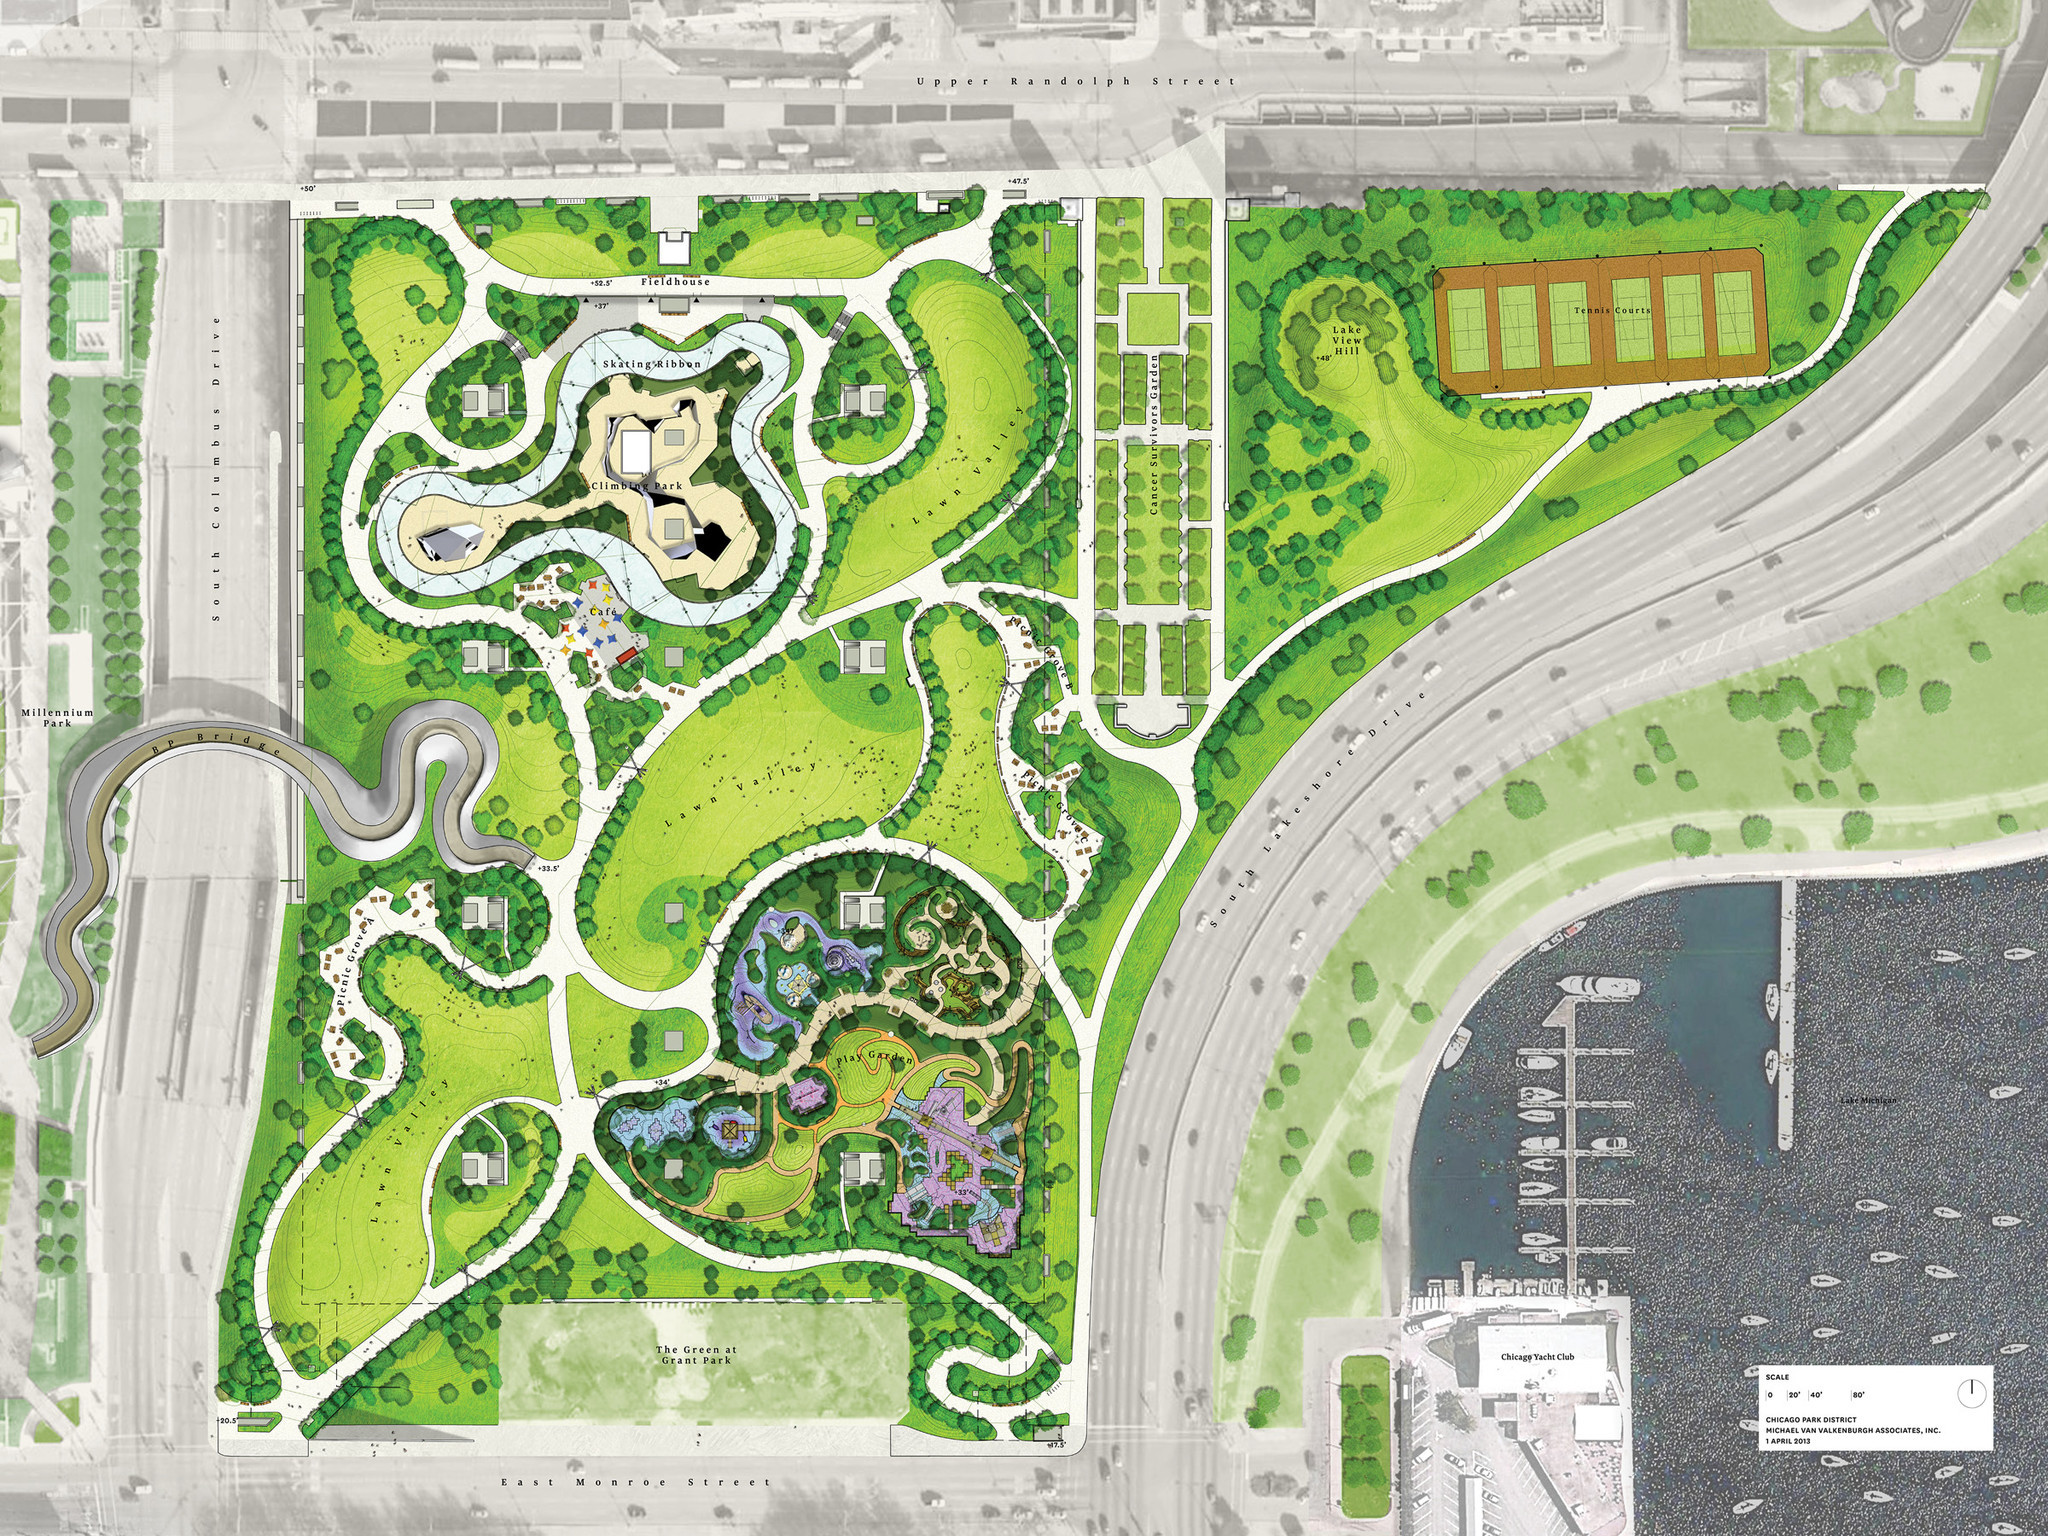 Tennis Courts Still Planned For Peanut Park Redeye Chicago